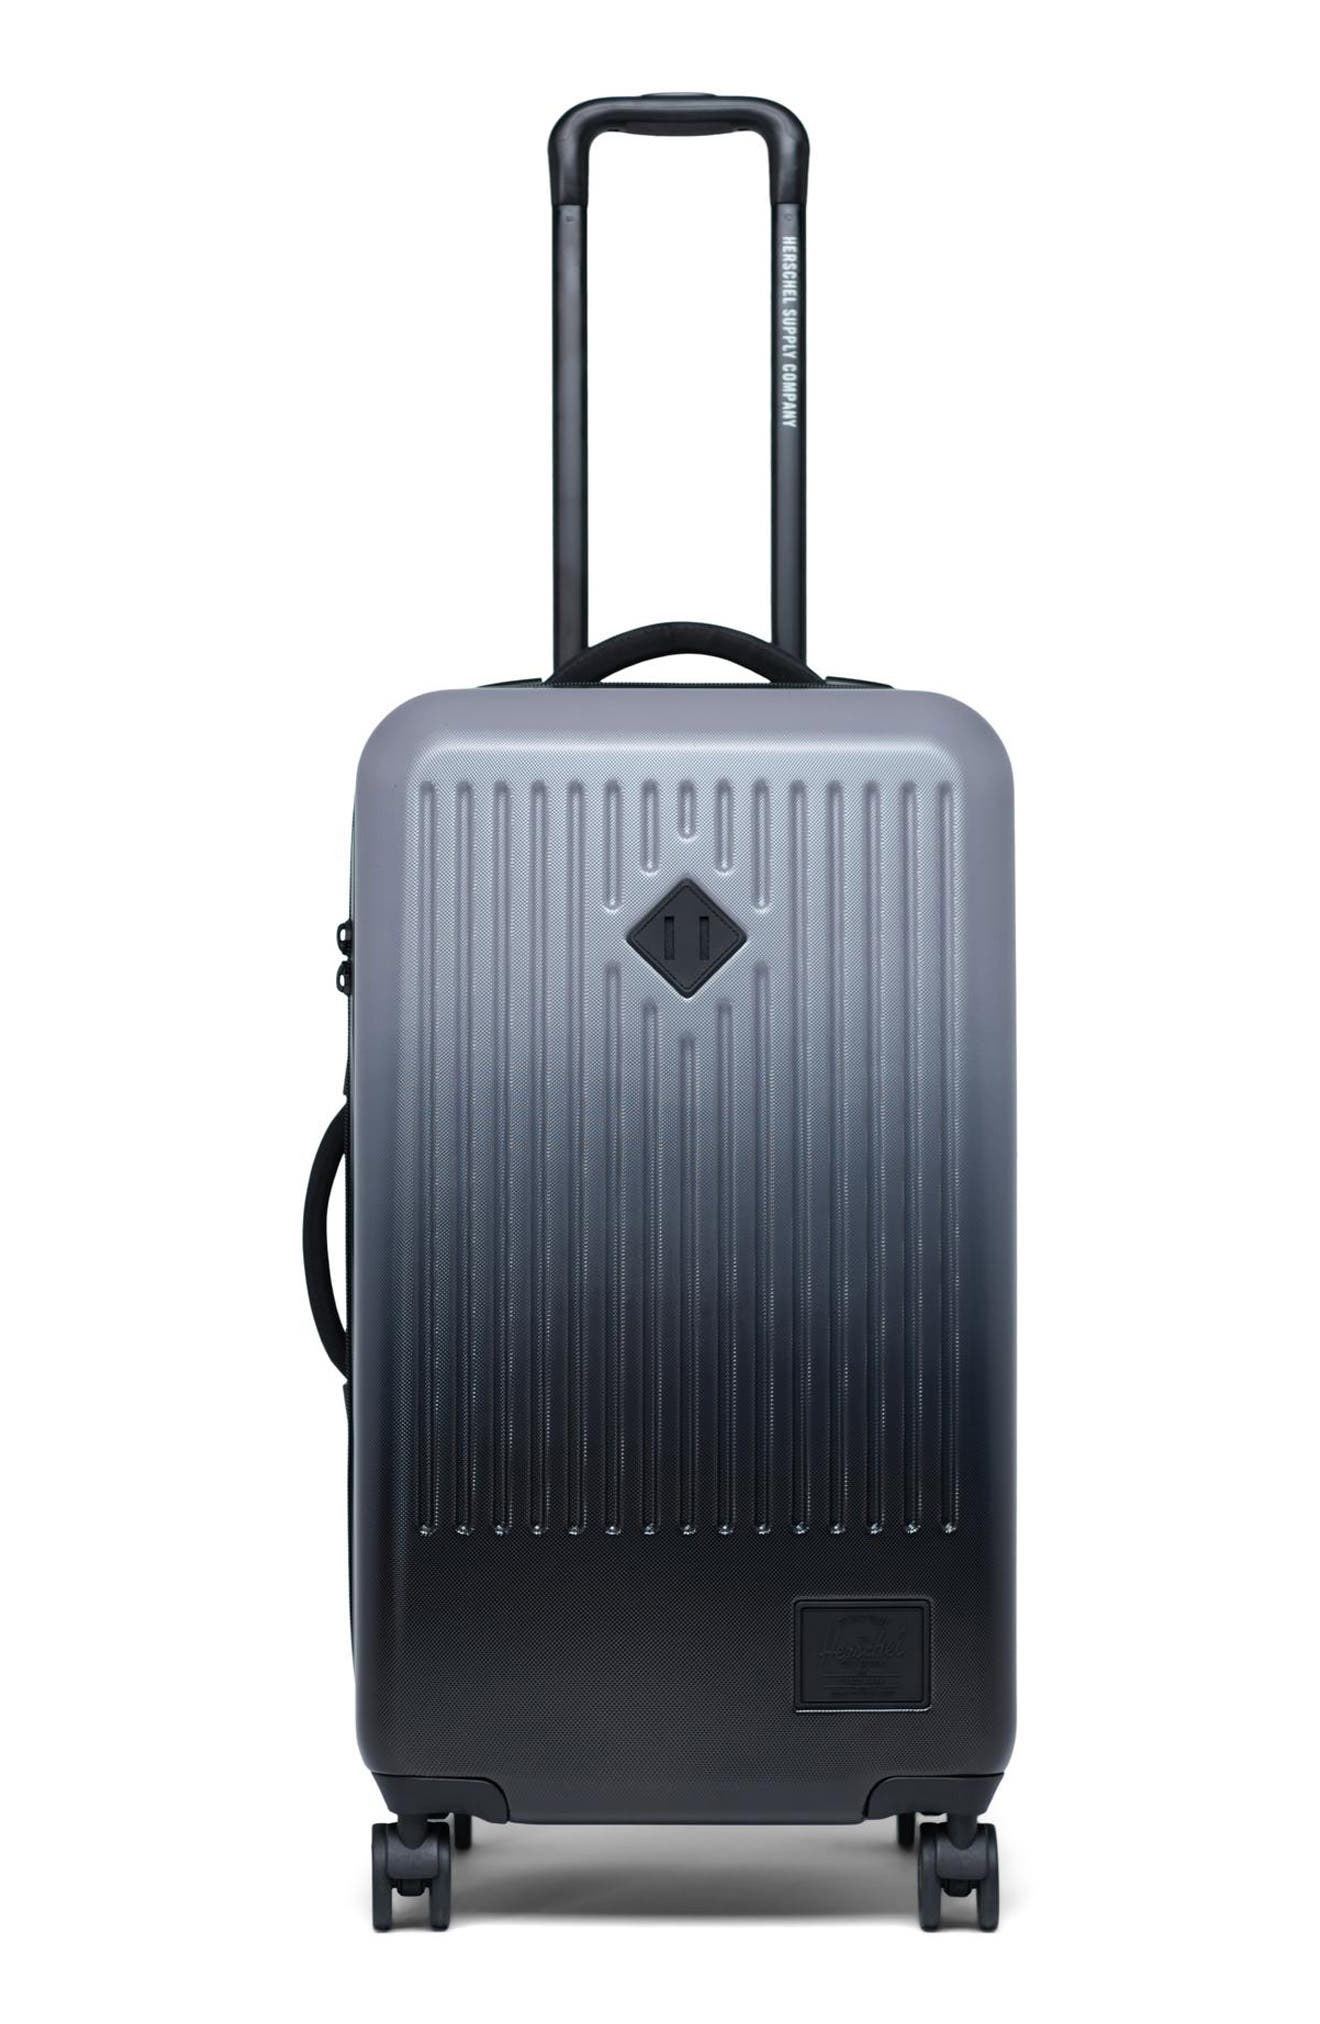 ombre blue luggage with a hard-shelled case